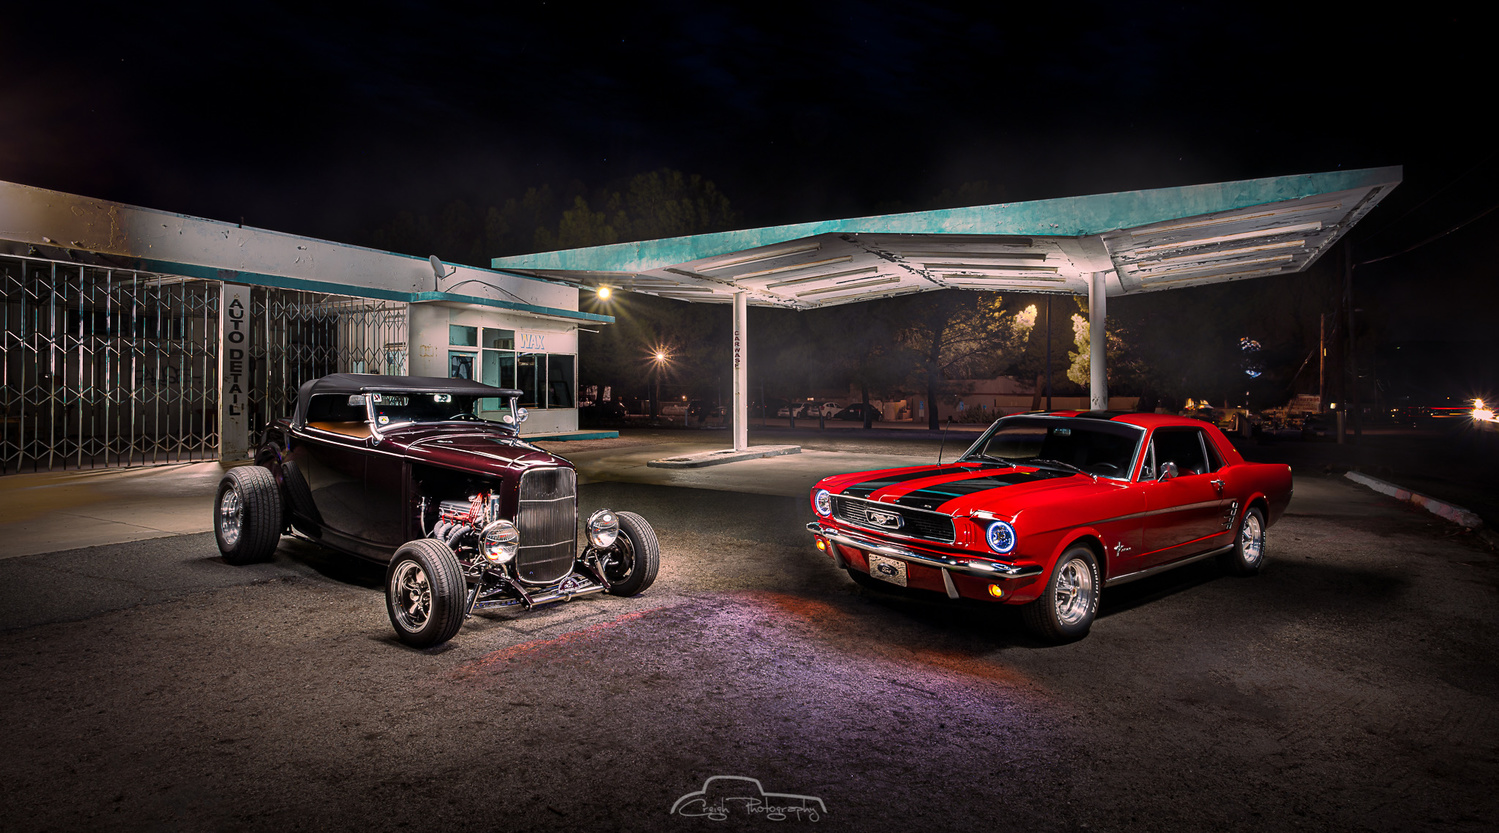 Jacumba Gas Station by Creigh McIntyre